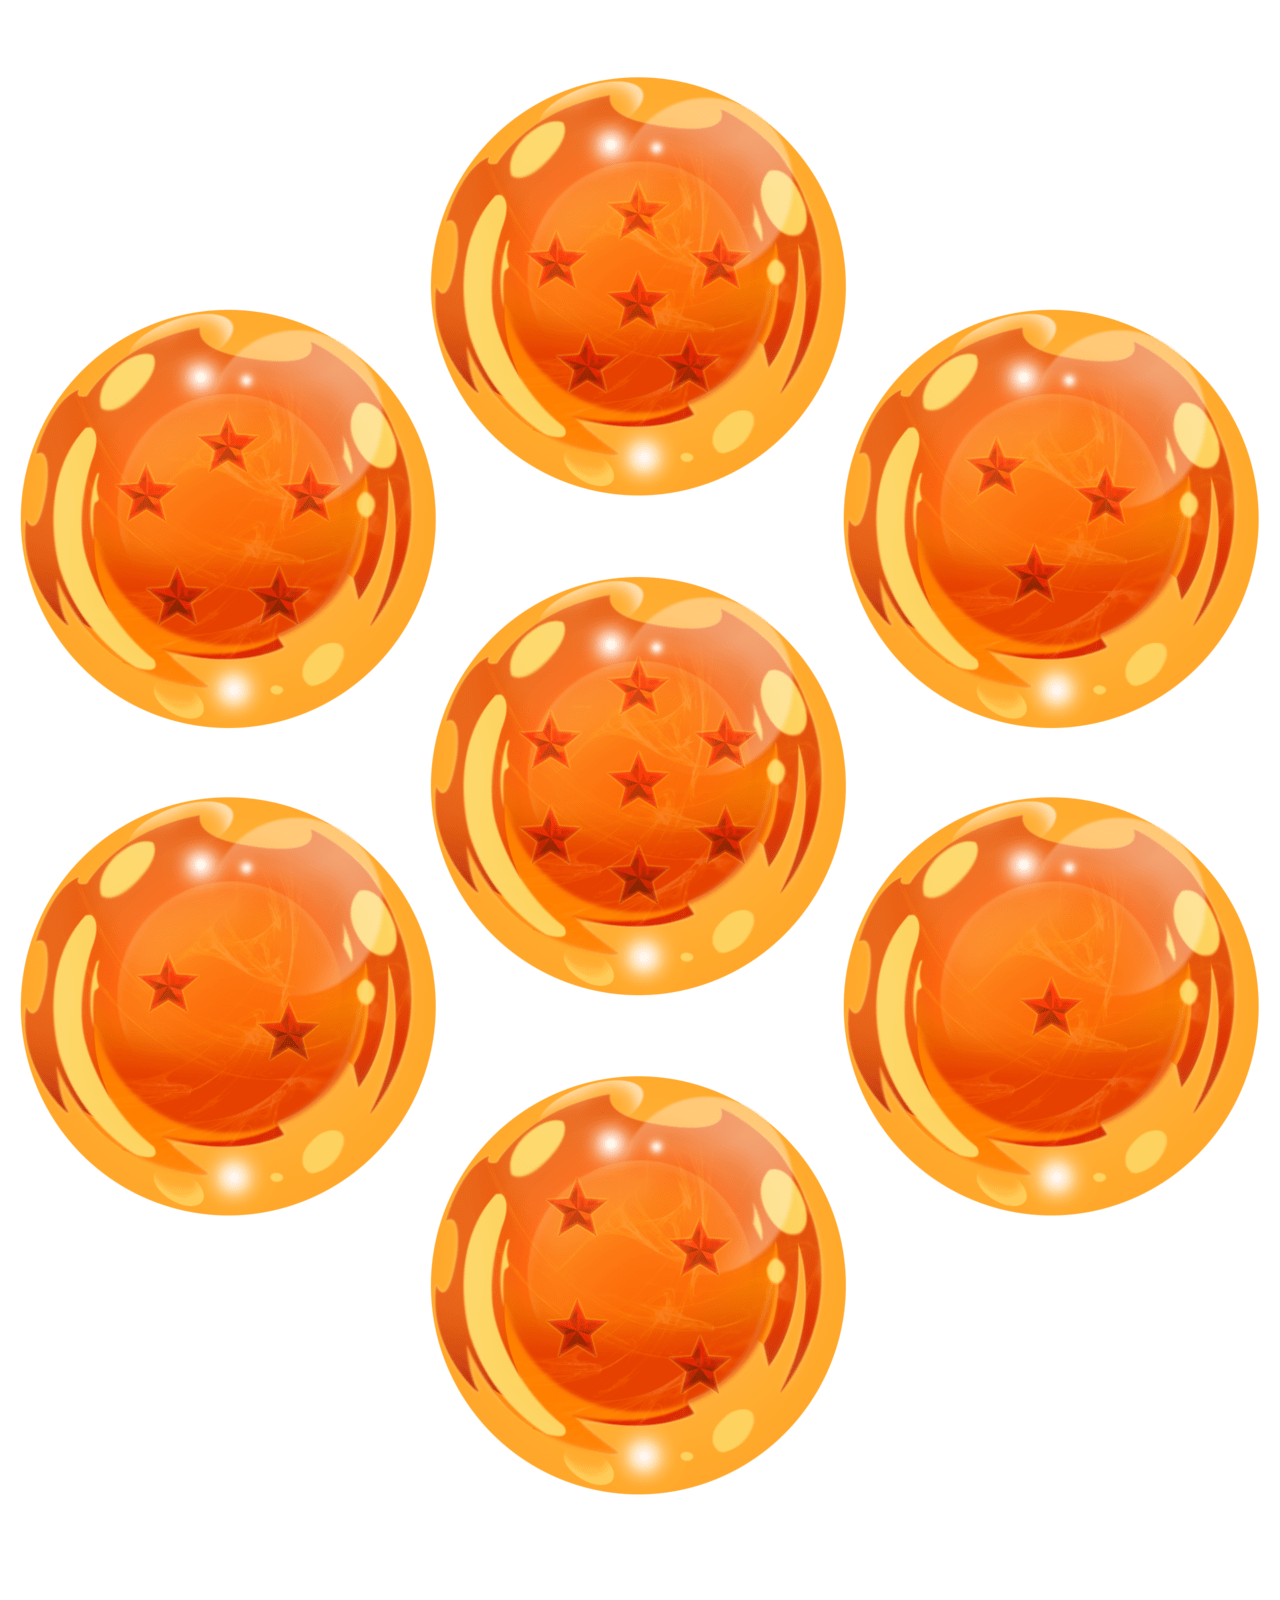 Dragon Sala Set Olx Dragon Balls Dragonball Z Bday Pinterest Dragon Ball